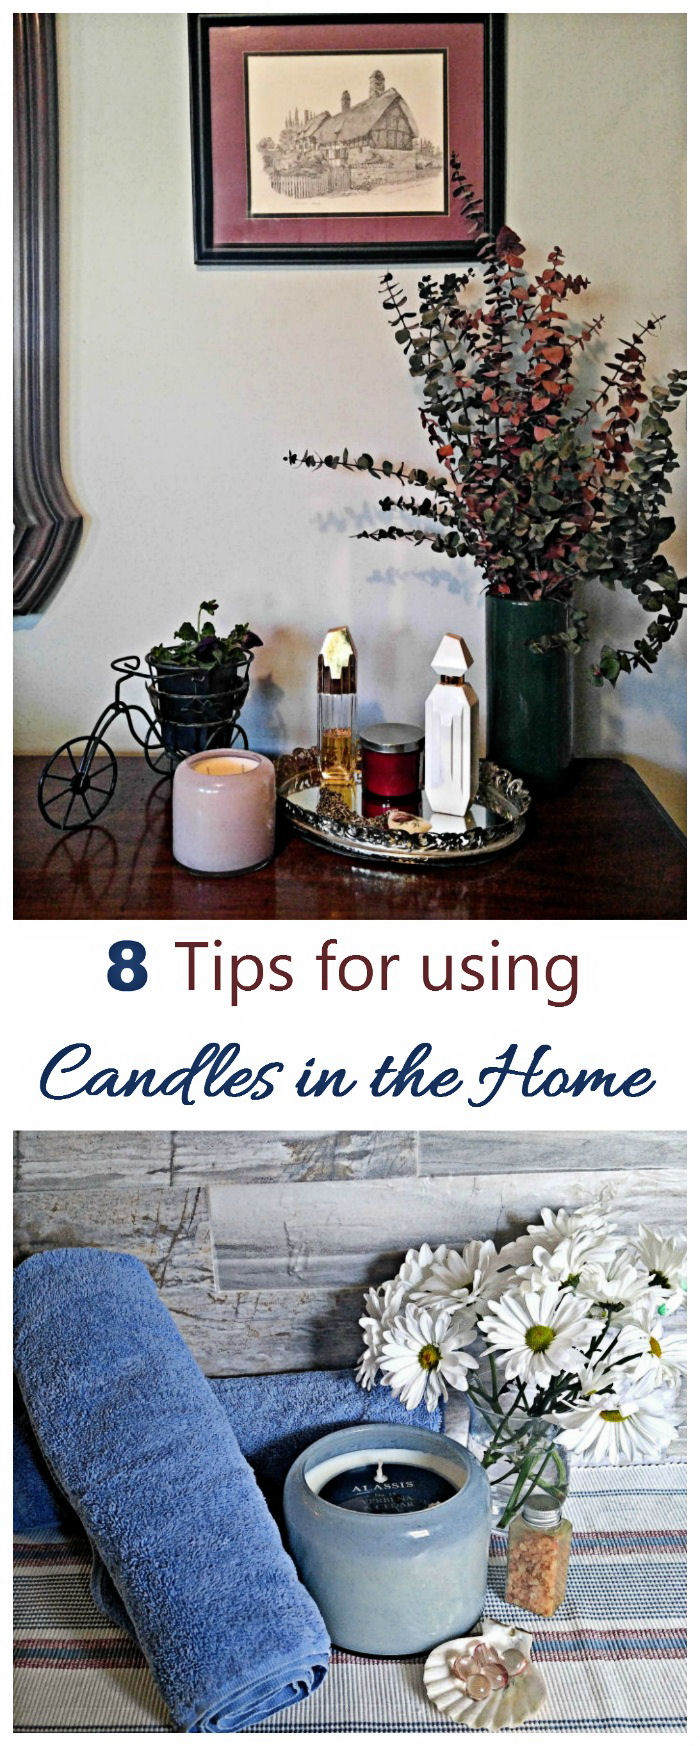 Candles add mood and coziness to any rooms of the house. I use them everywhere, including on my patio. See my 8 tips for using candles and how to make the most of them in every room of the house.. #chesapeakebaycandle #alassis #ad